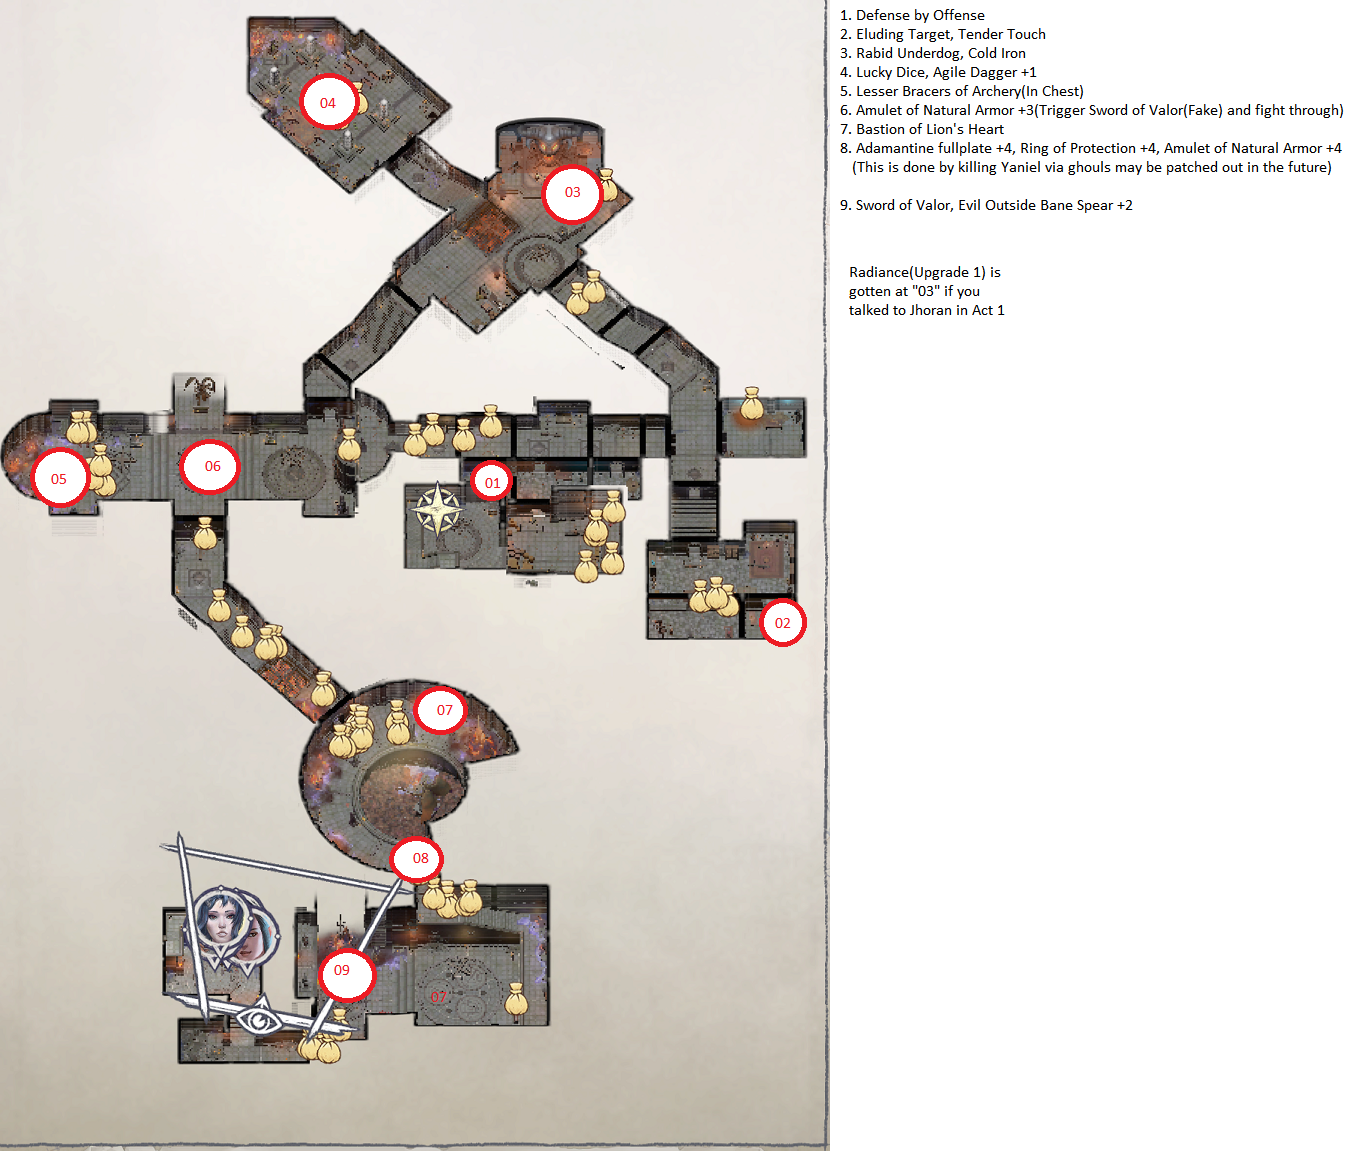 Pathfinder: Wrath of the Righteous All Items Location in Cave Map Guide - Ch. 2 Item Locations - F3C40CD